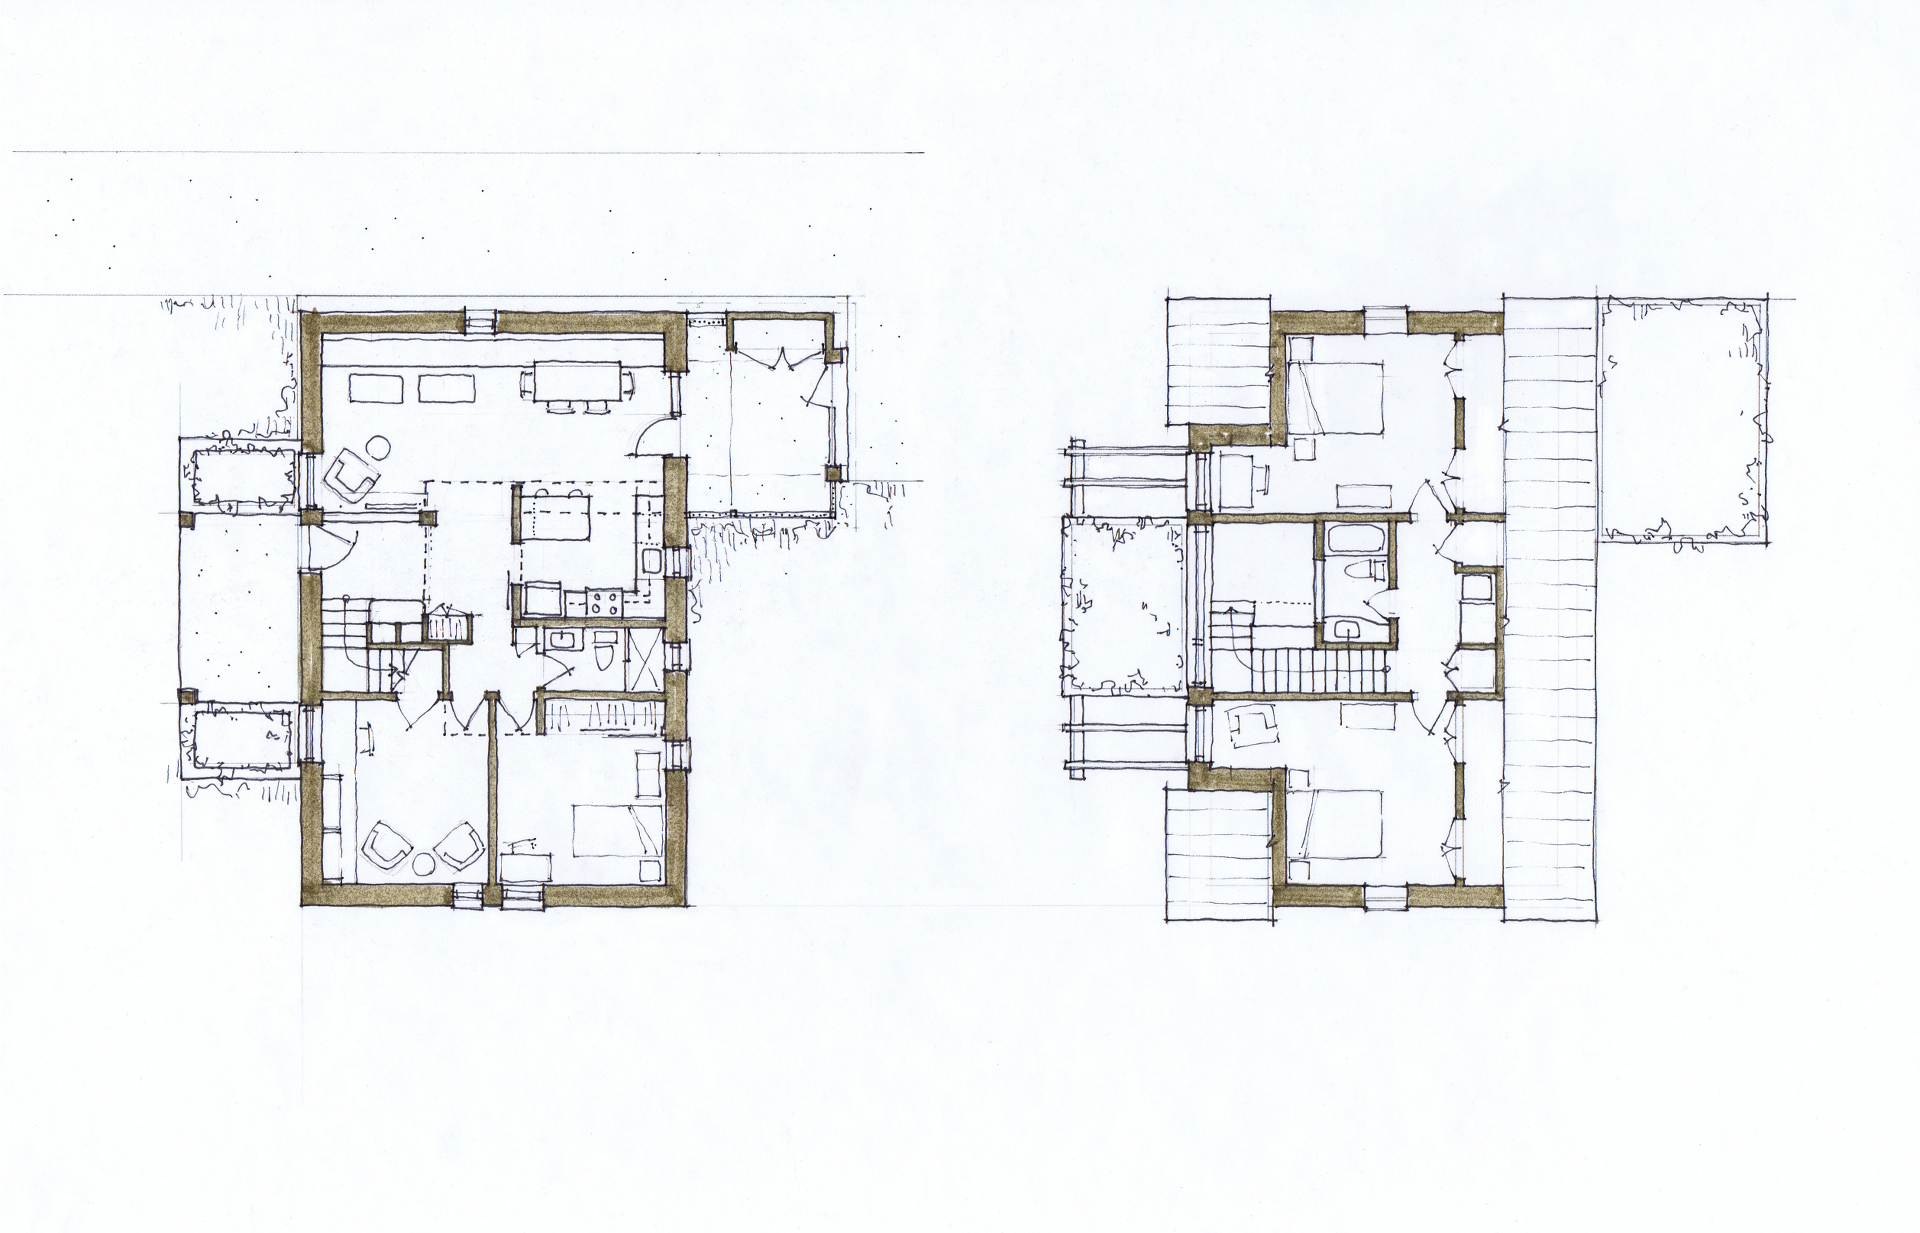 st-louis-plans-small